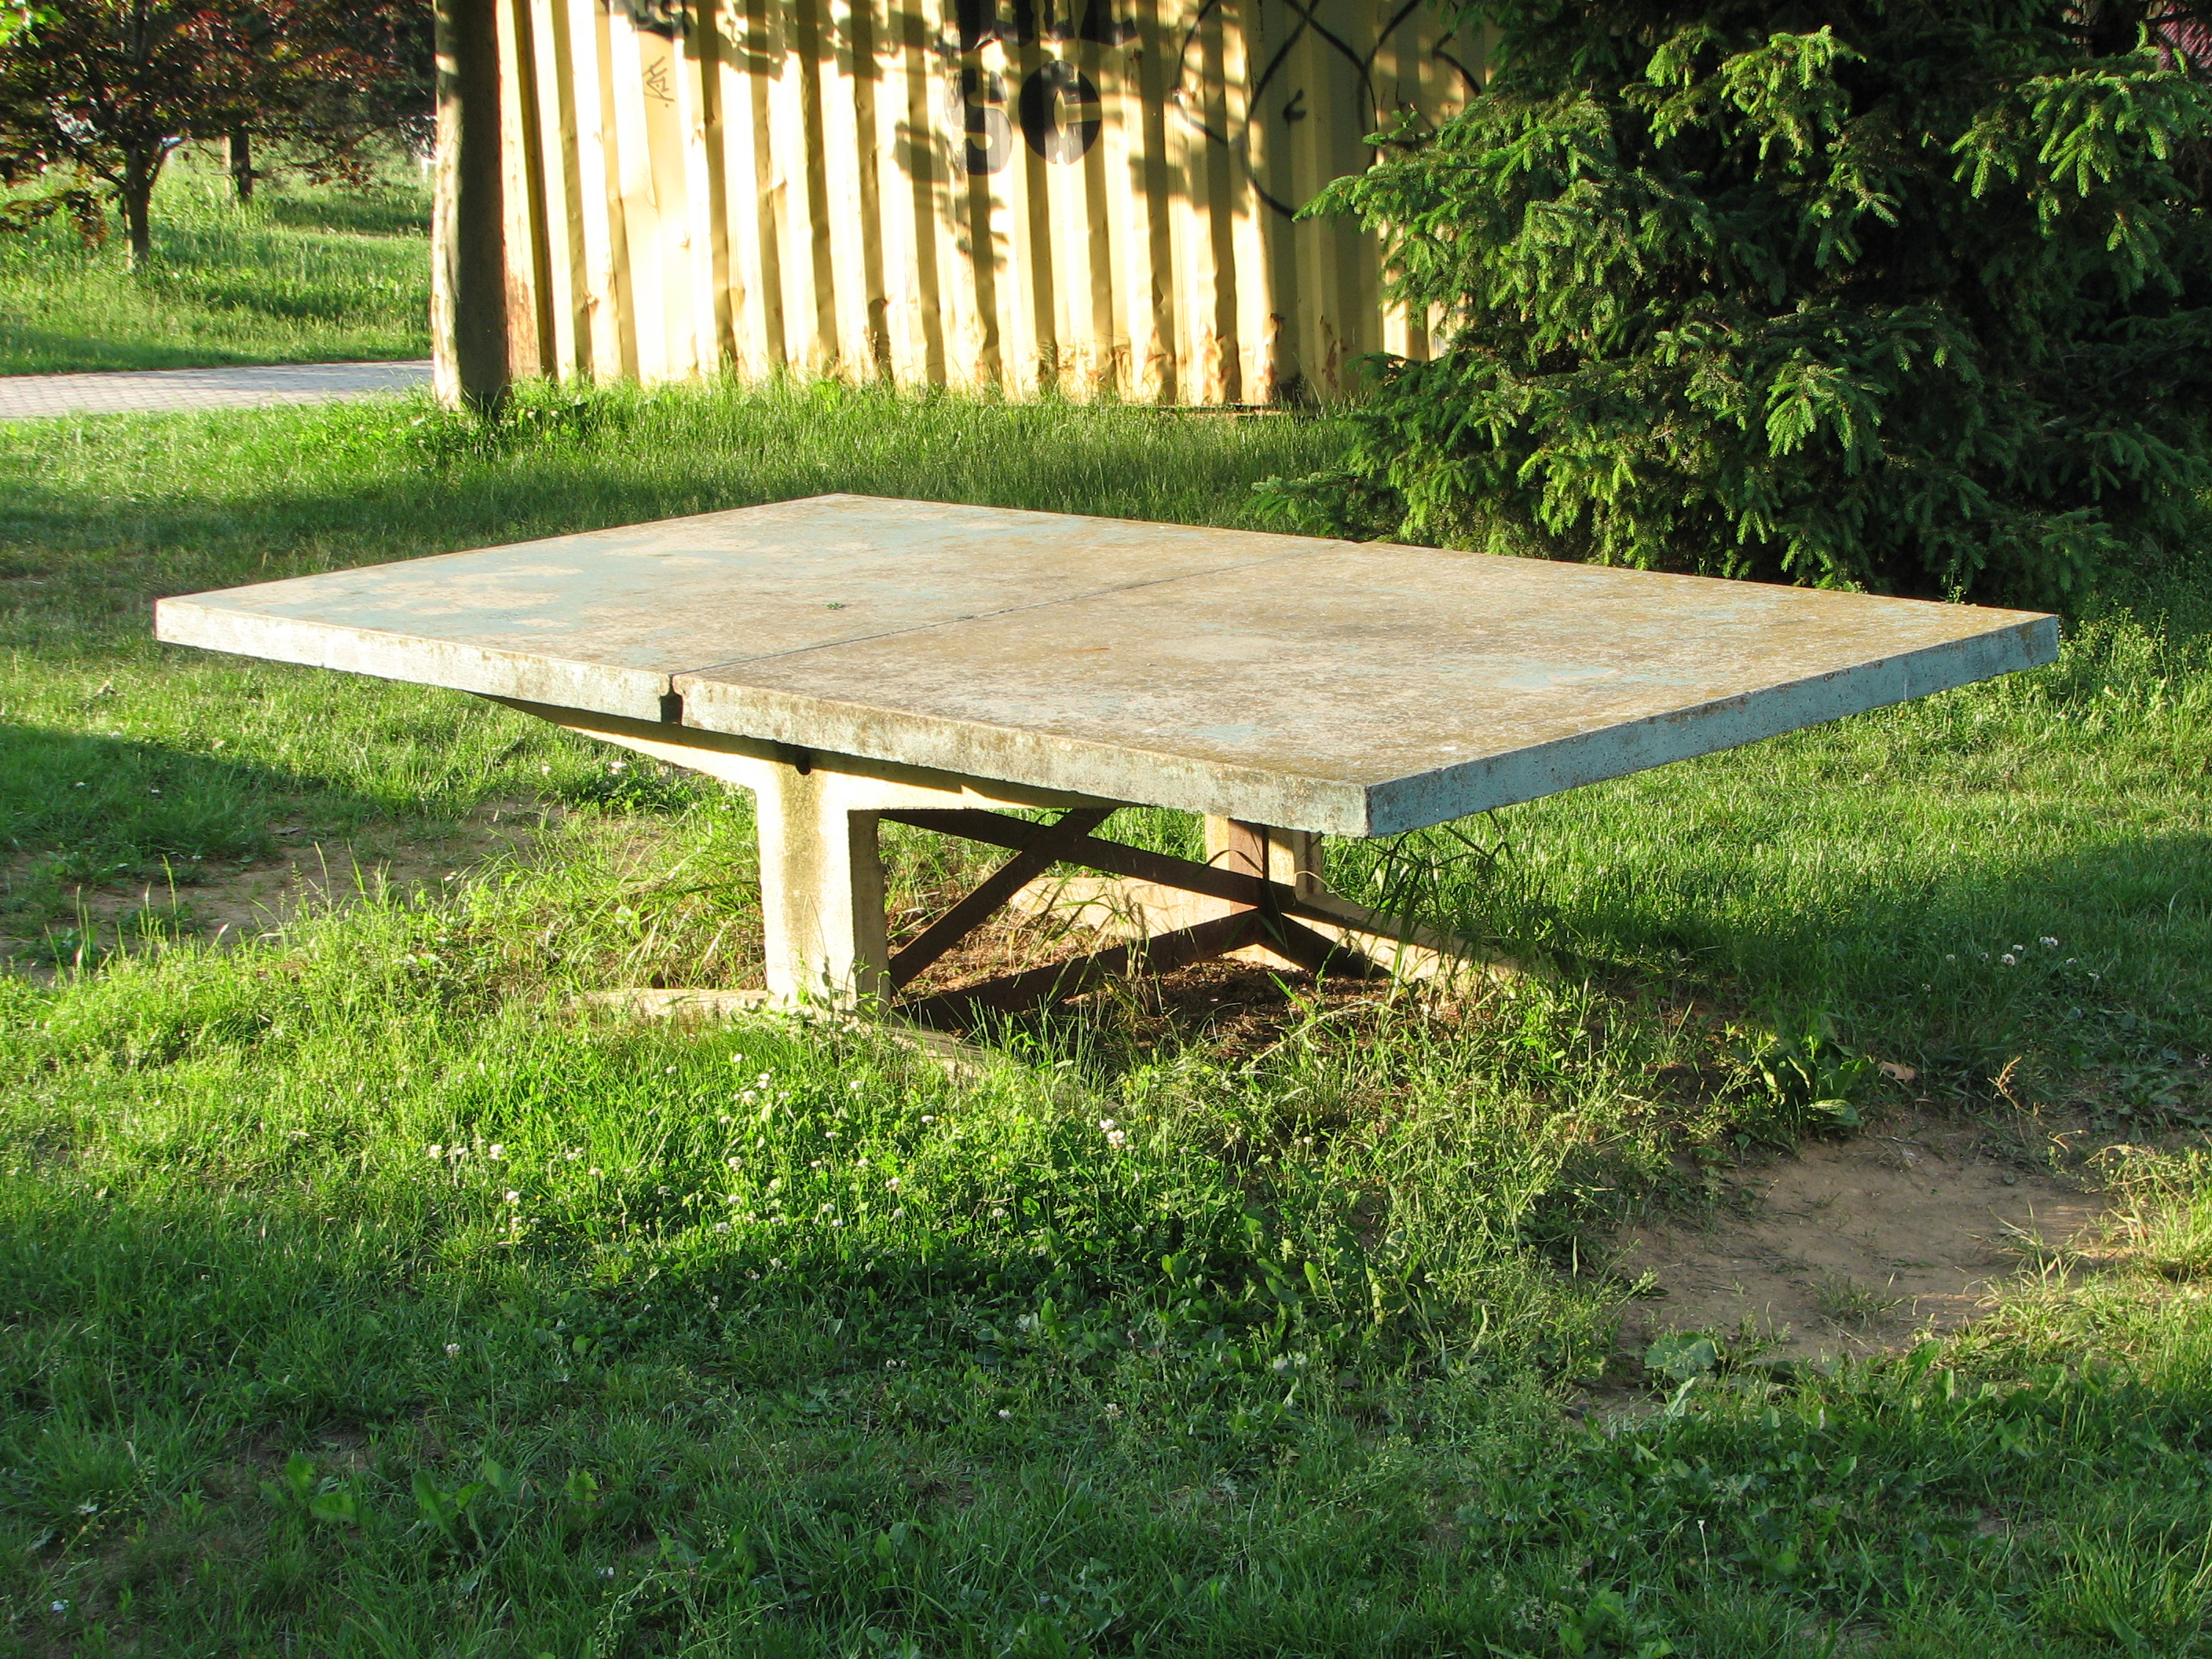 file ping pong table 01 jpg wikimedia commons rh commons wikimedia org